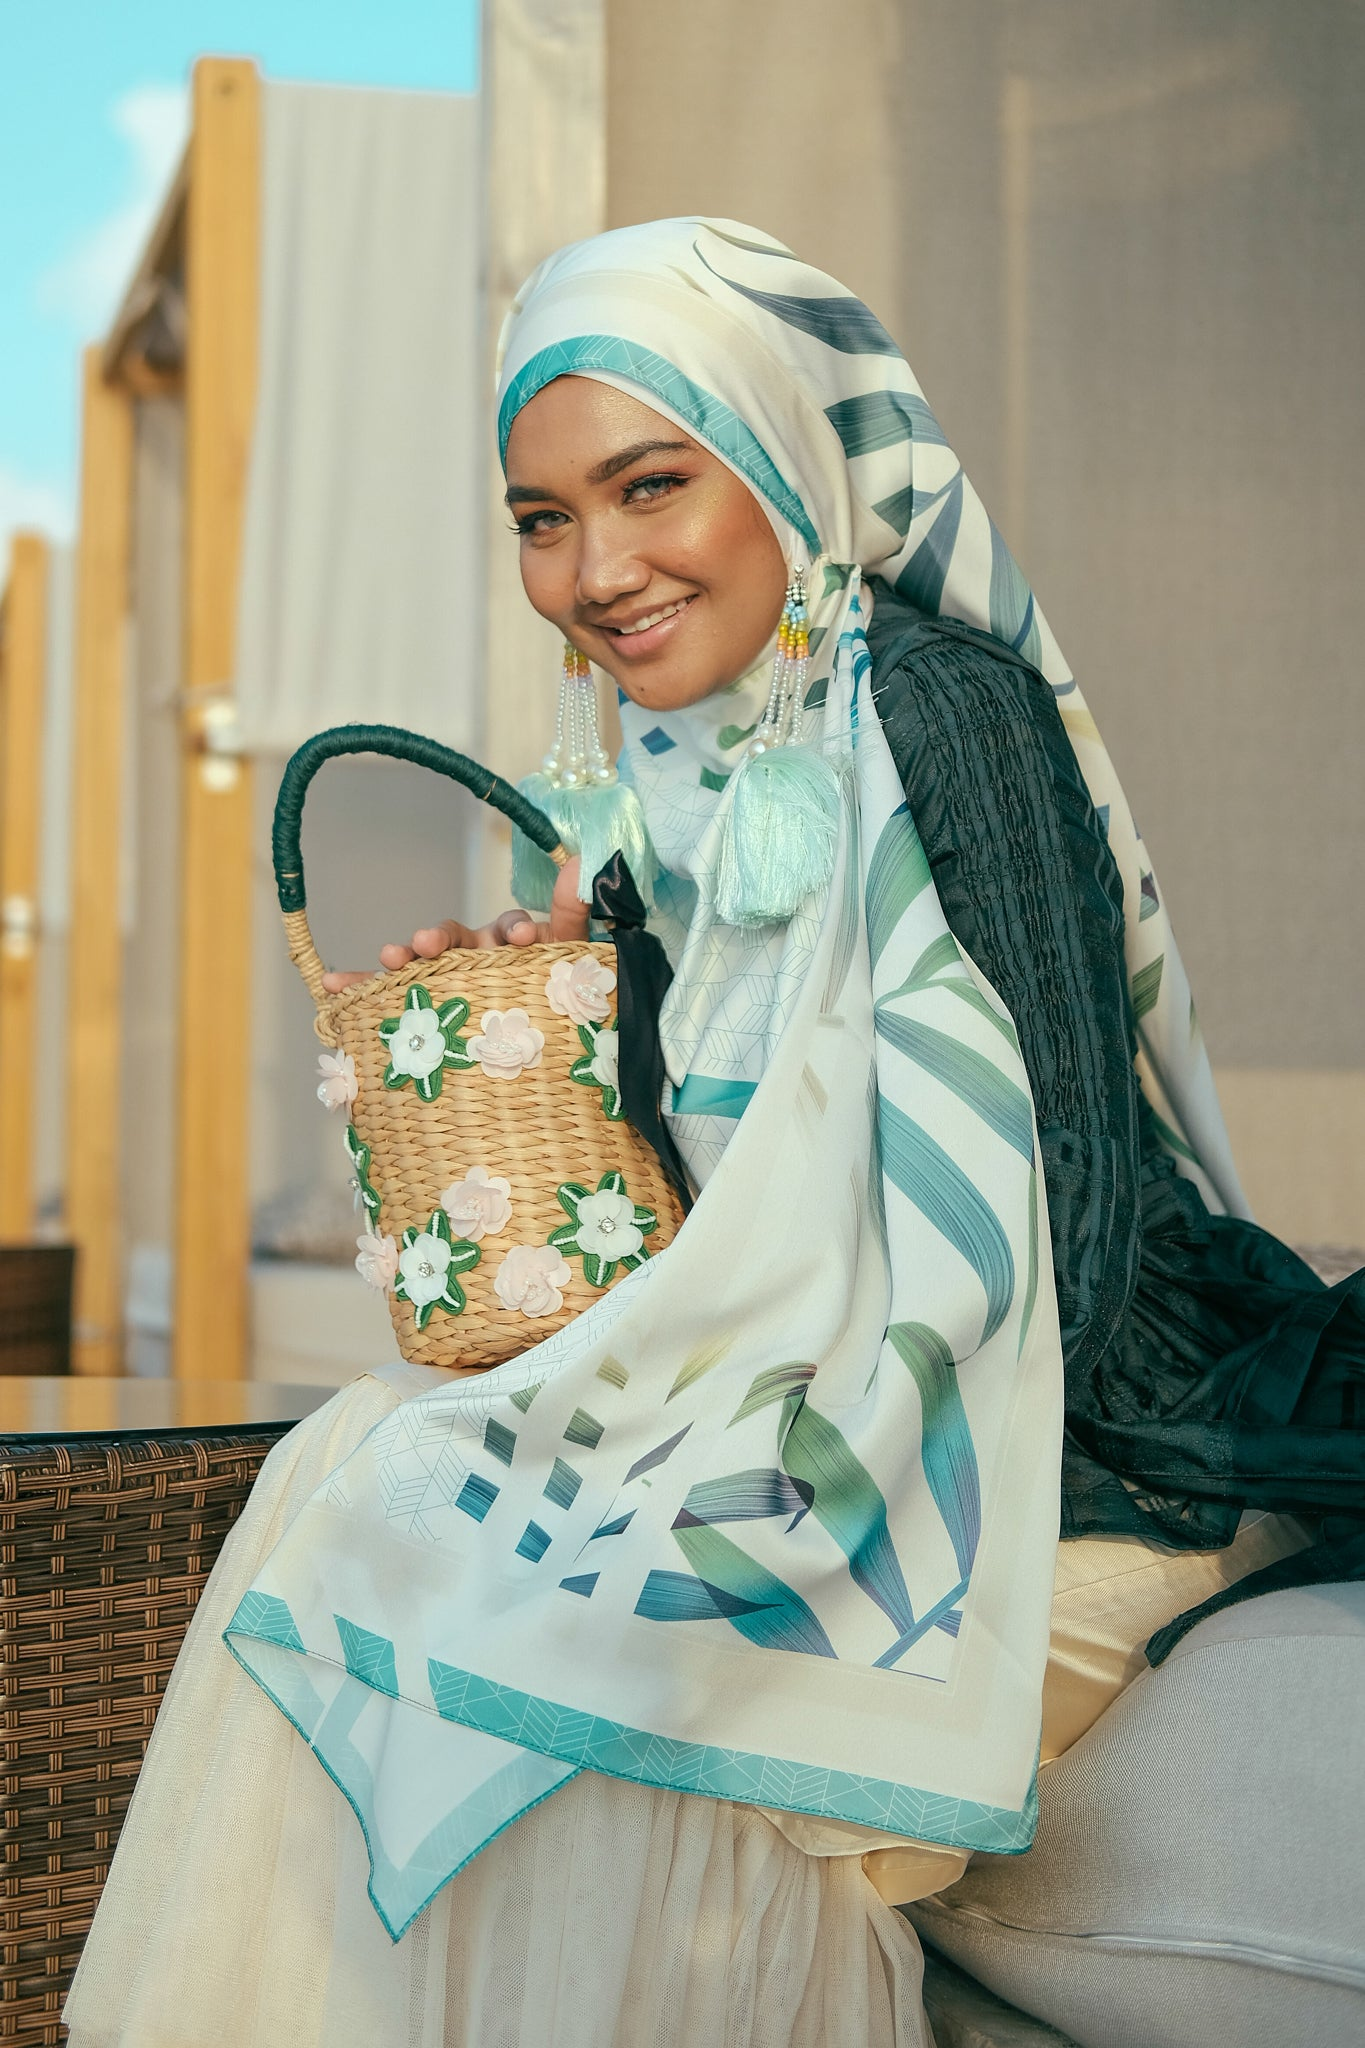 Maldives Wanderlust Series : Aahuraa (3 Way Bawal)